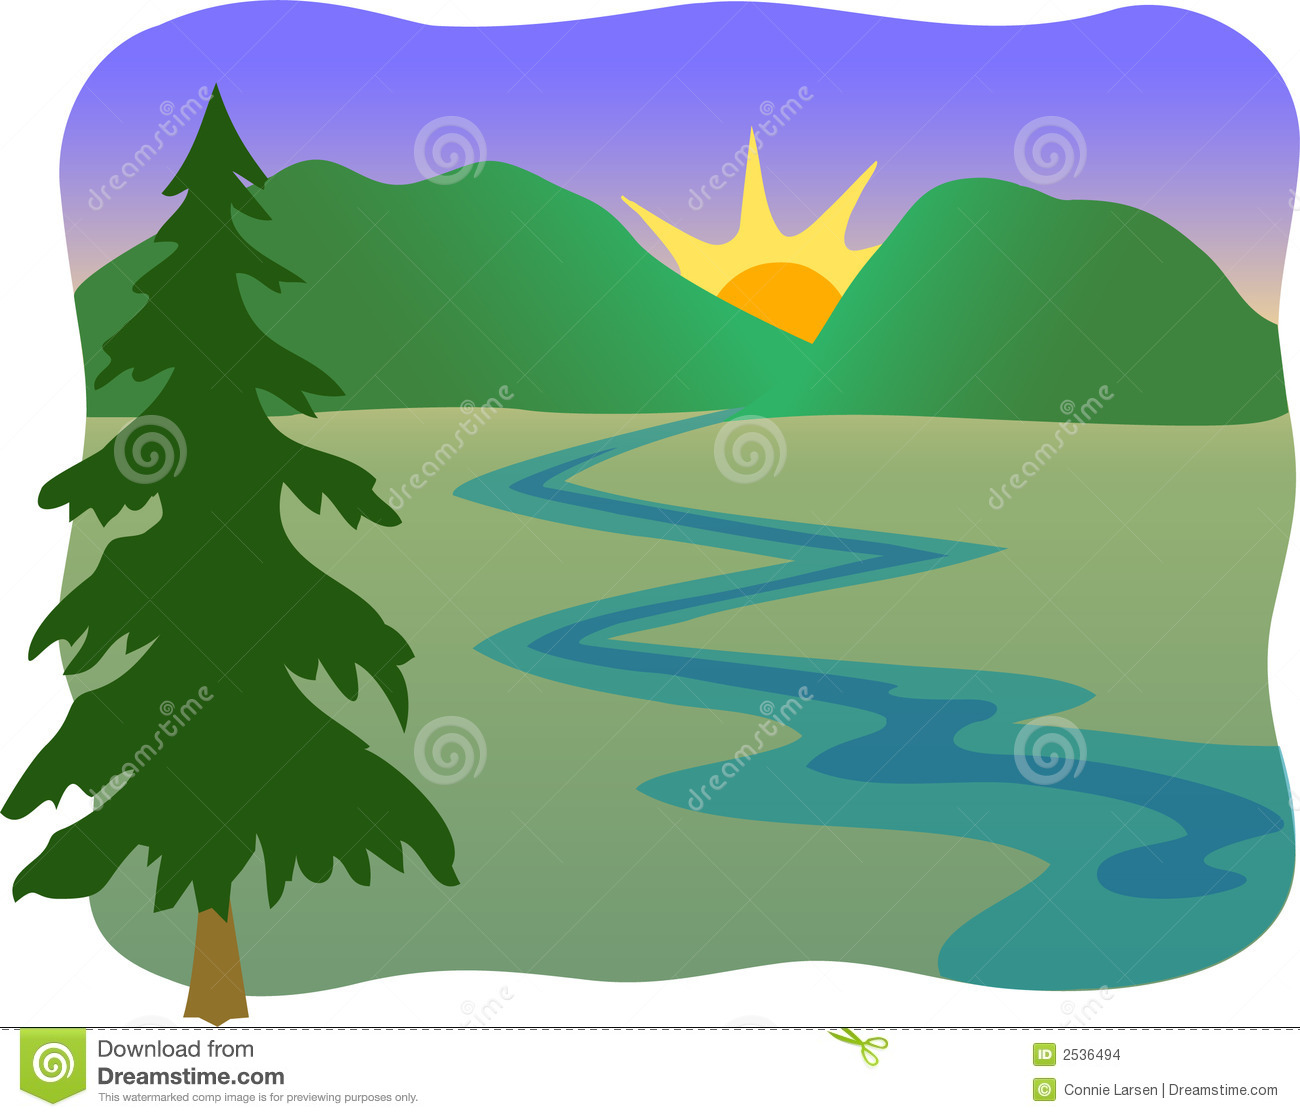 Hiking clipart stream. River free download best